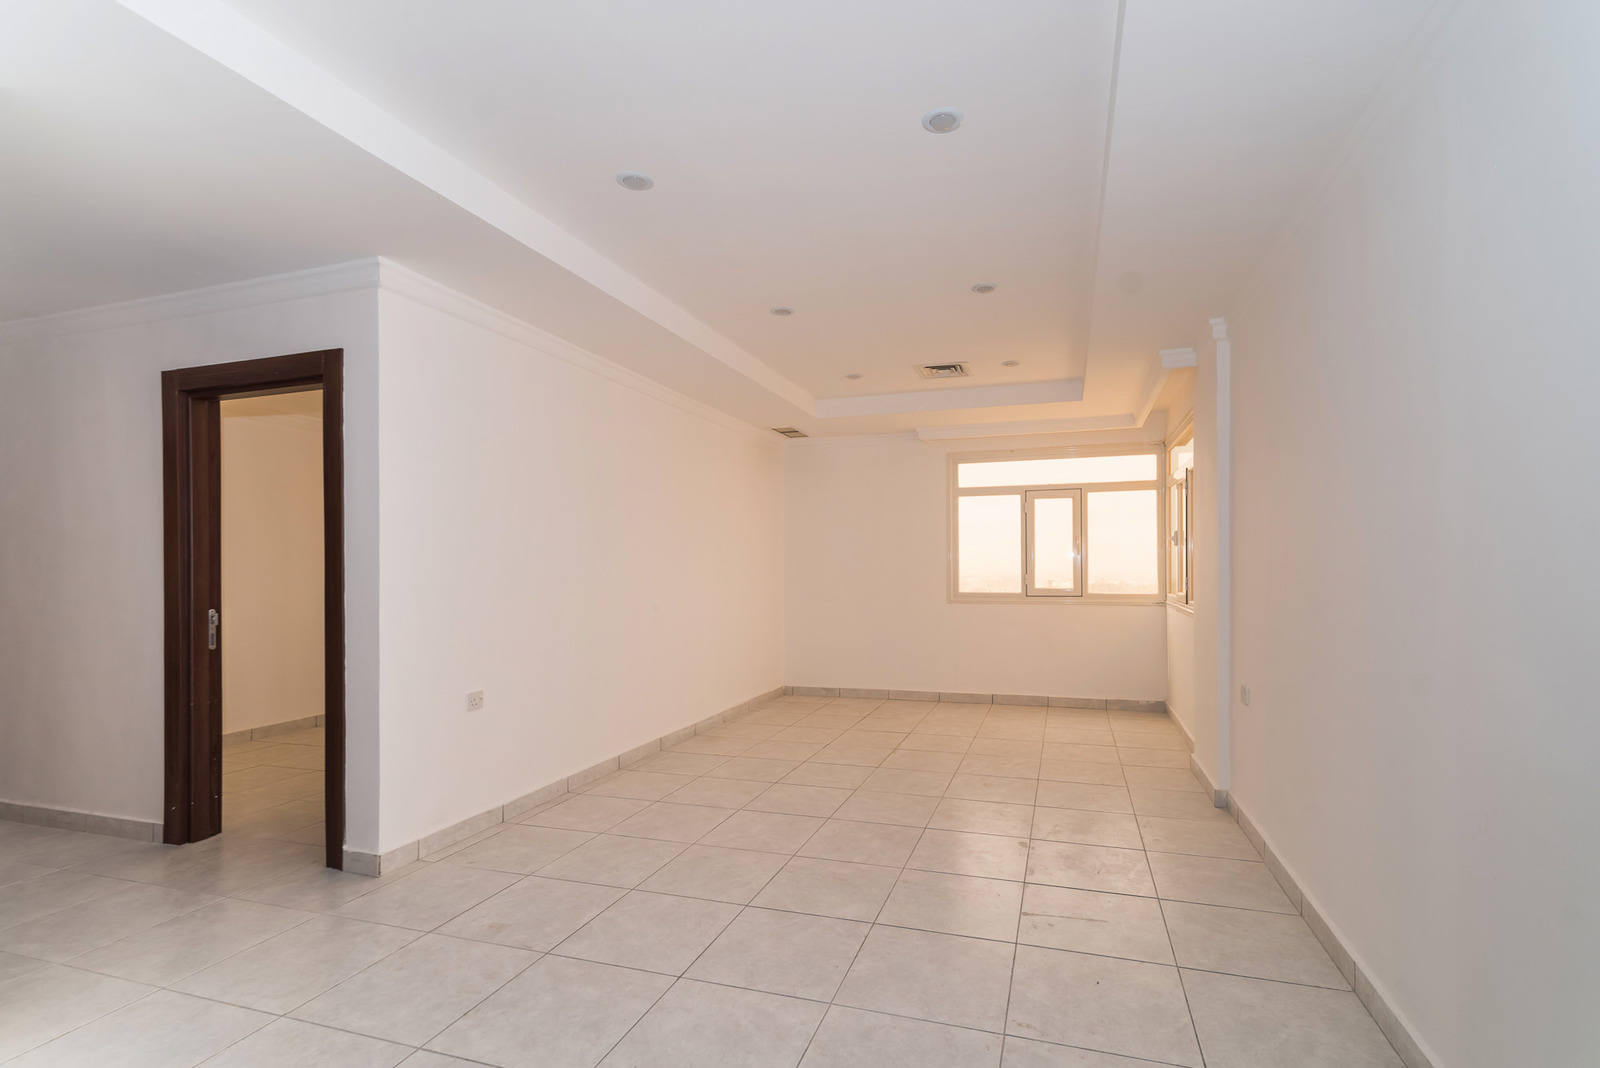 Fintas – new, unfurnished building – 32 two bedroom apartments